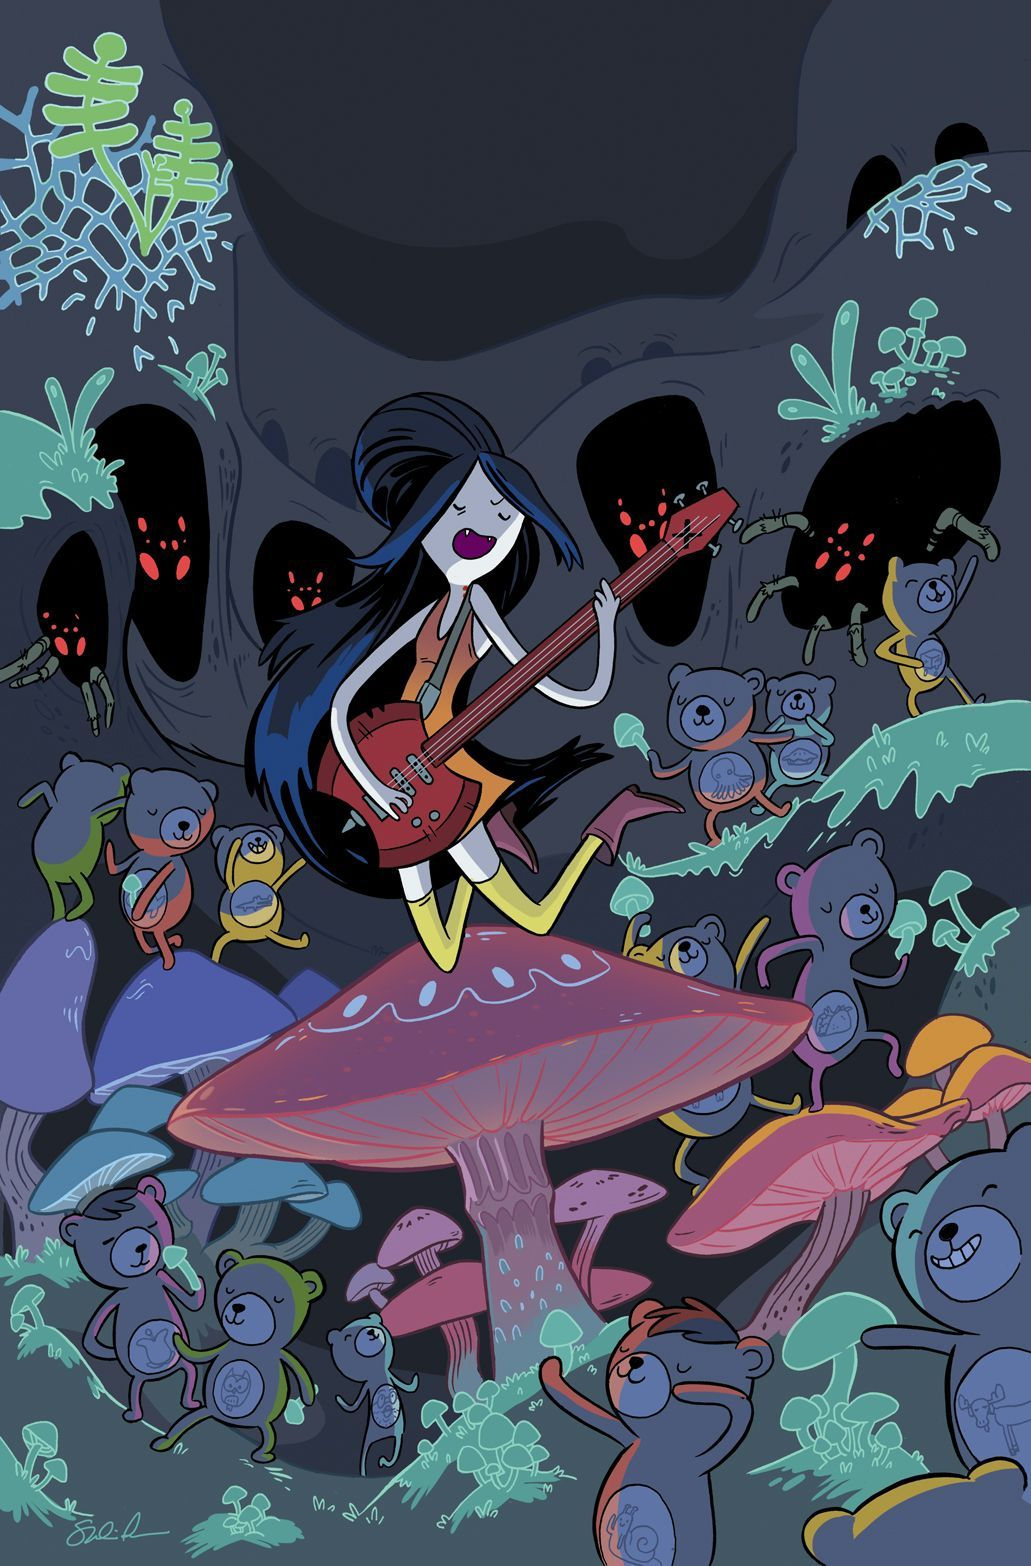 Pin by LILA🤍 on art in 2020 Adventure time marceline